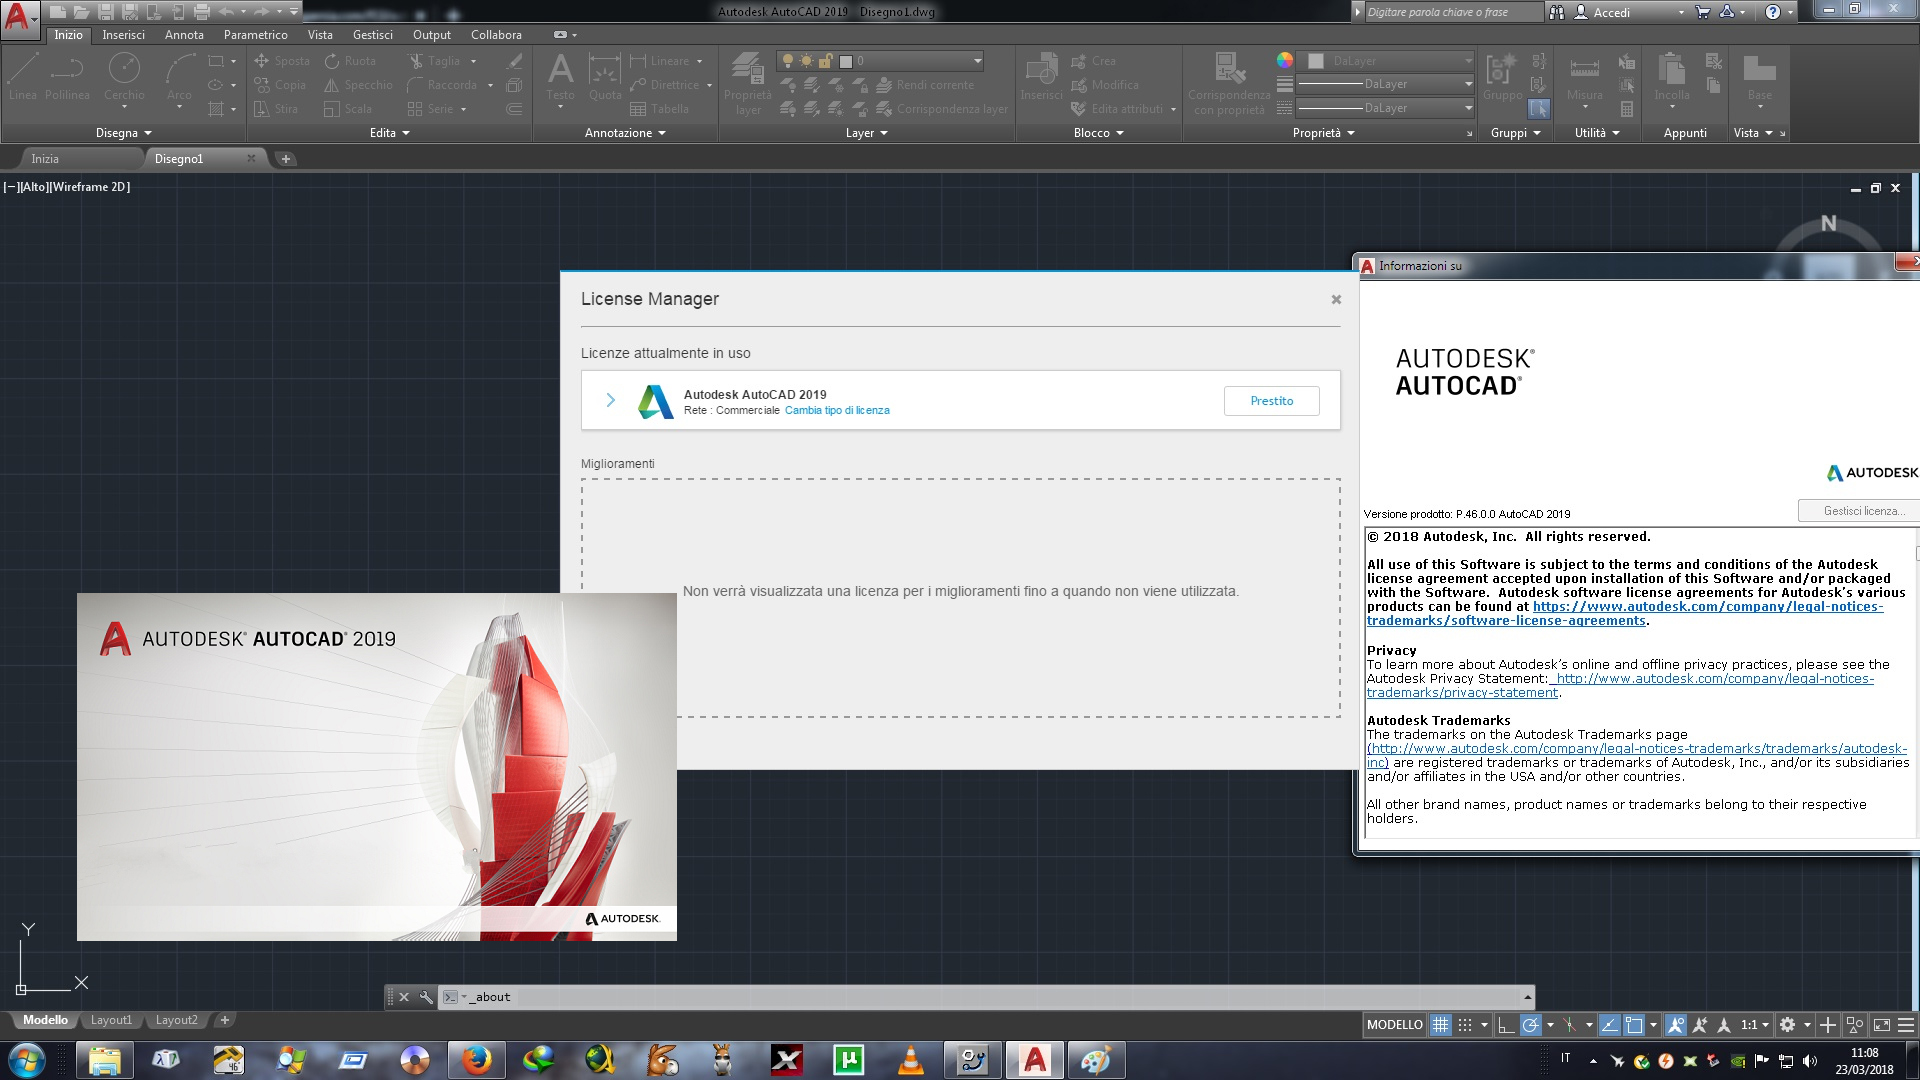 x-force keygen for all autodesk products 2016 download